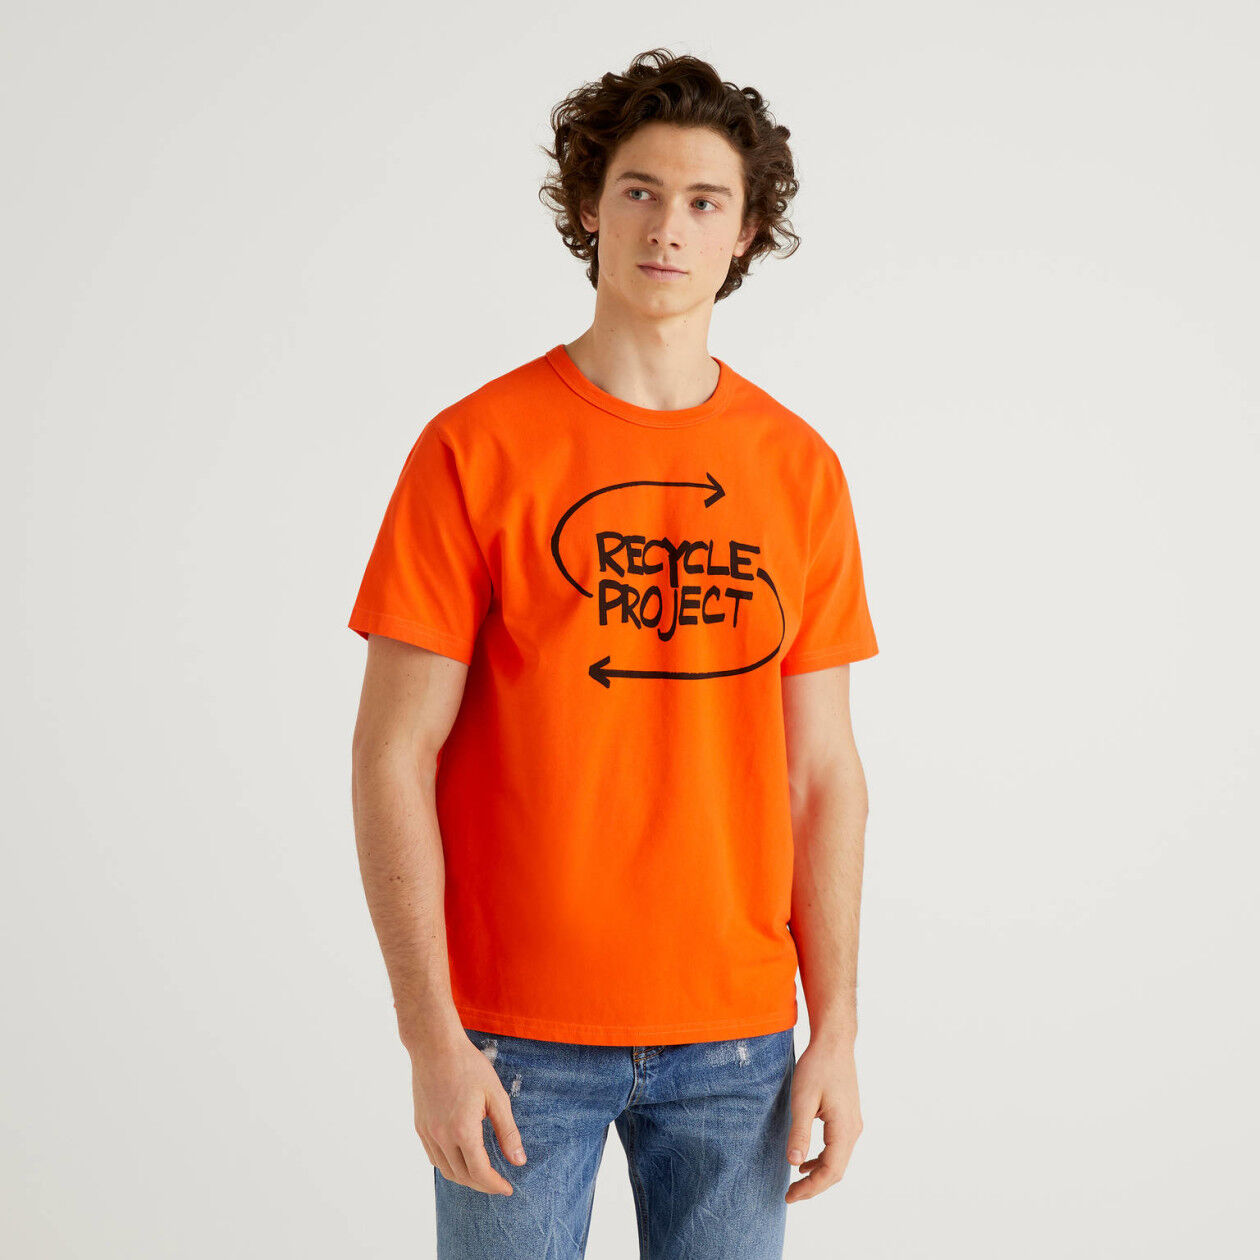 100% organic cotton t-shirt with print